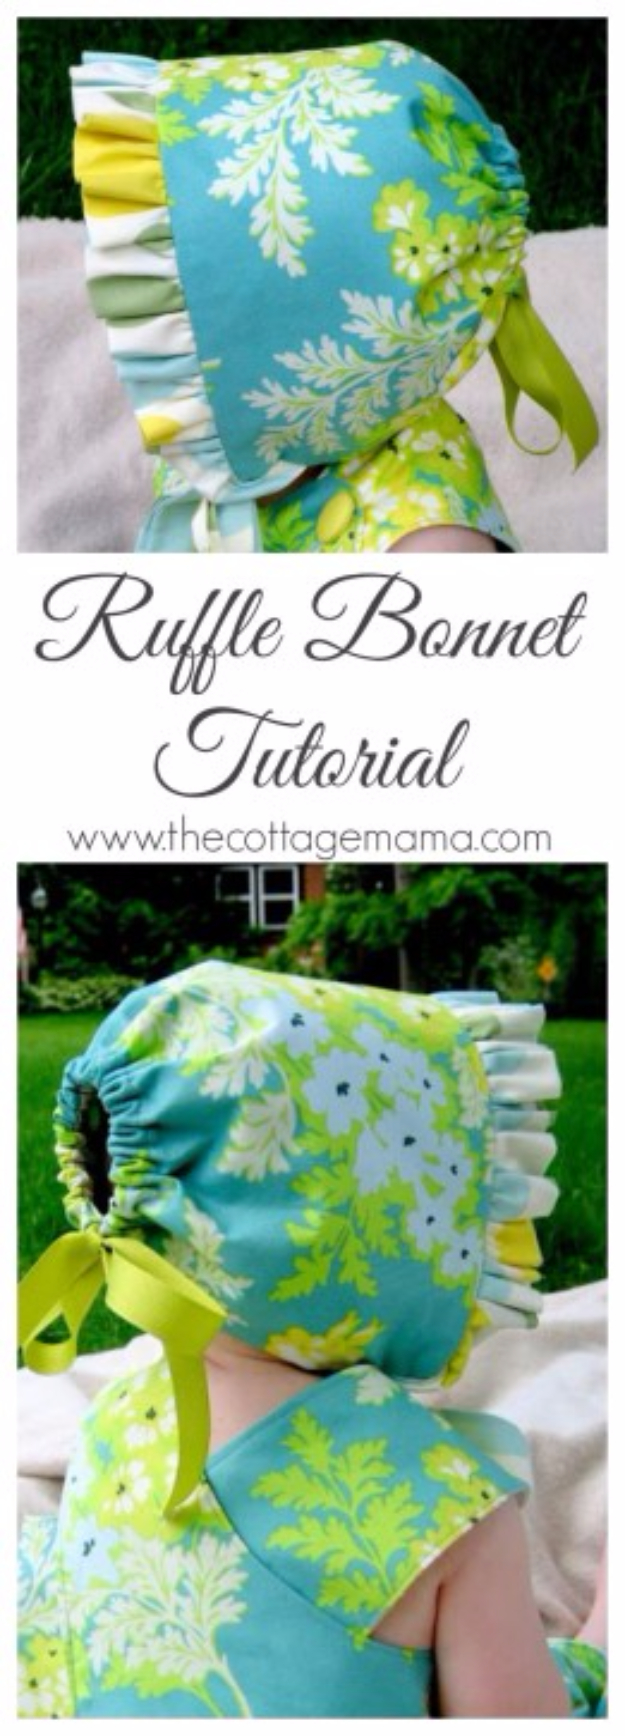 51 Things to Sew for Baby - Ruffle Bonnet Tutorial - Cool Gifts For Baby, Easy Things To Sew And Sell, Quick Things To Sew For Baby, Easy Baby Sewing Projects For Beginners, Baby Items To Sew And Sell #baby #diy #diygifts